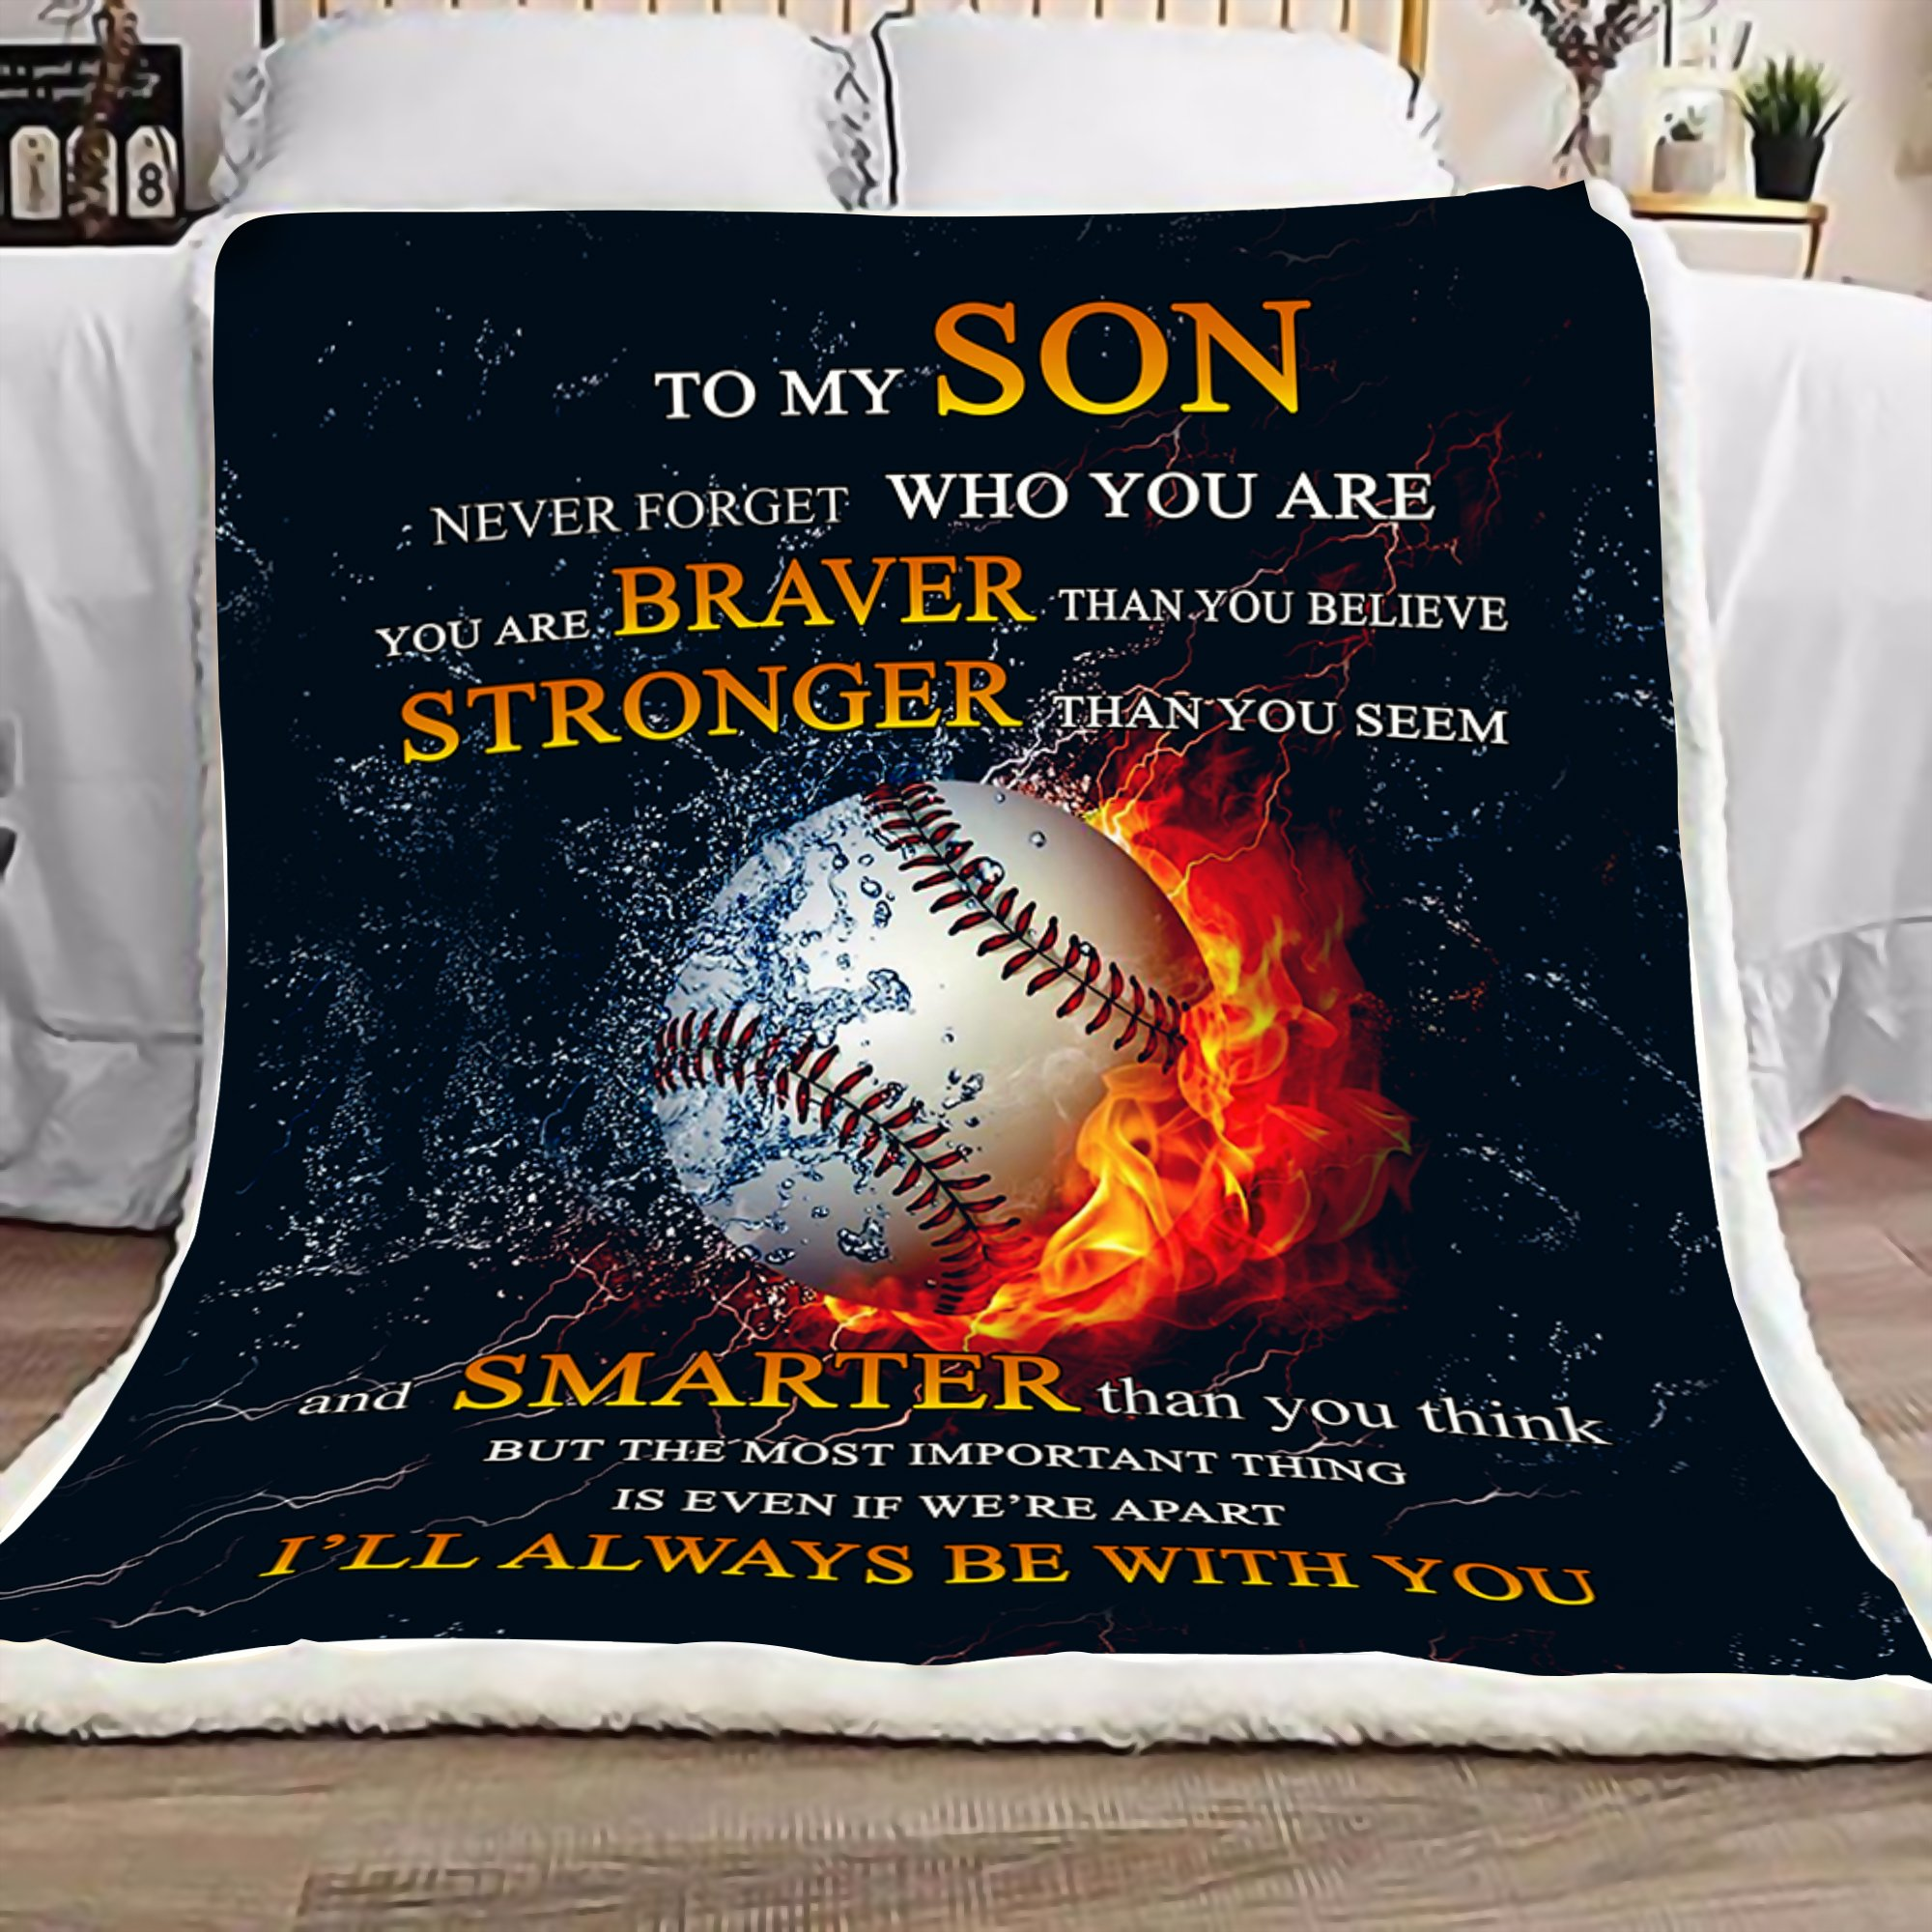 To my son never forget who you are baseball blanket 1